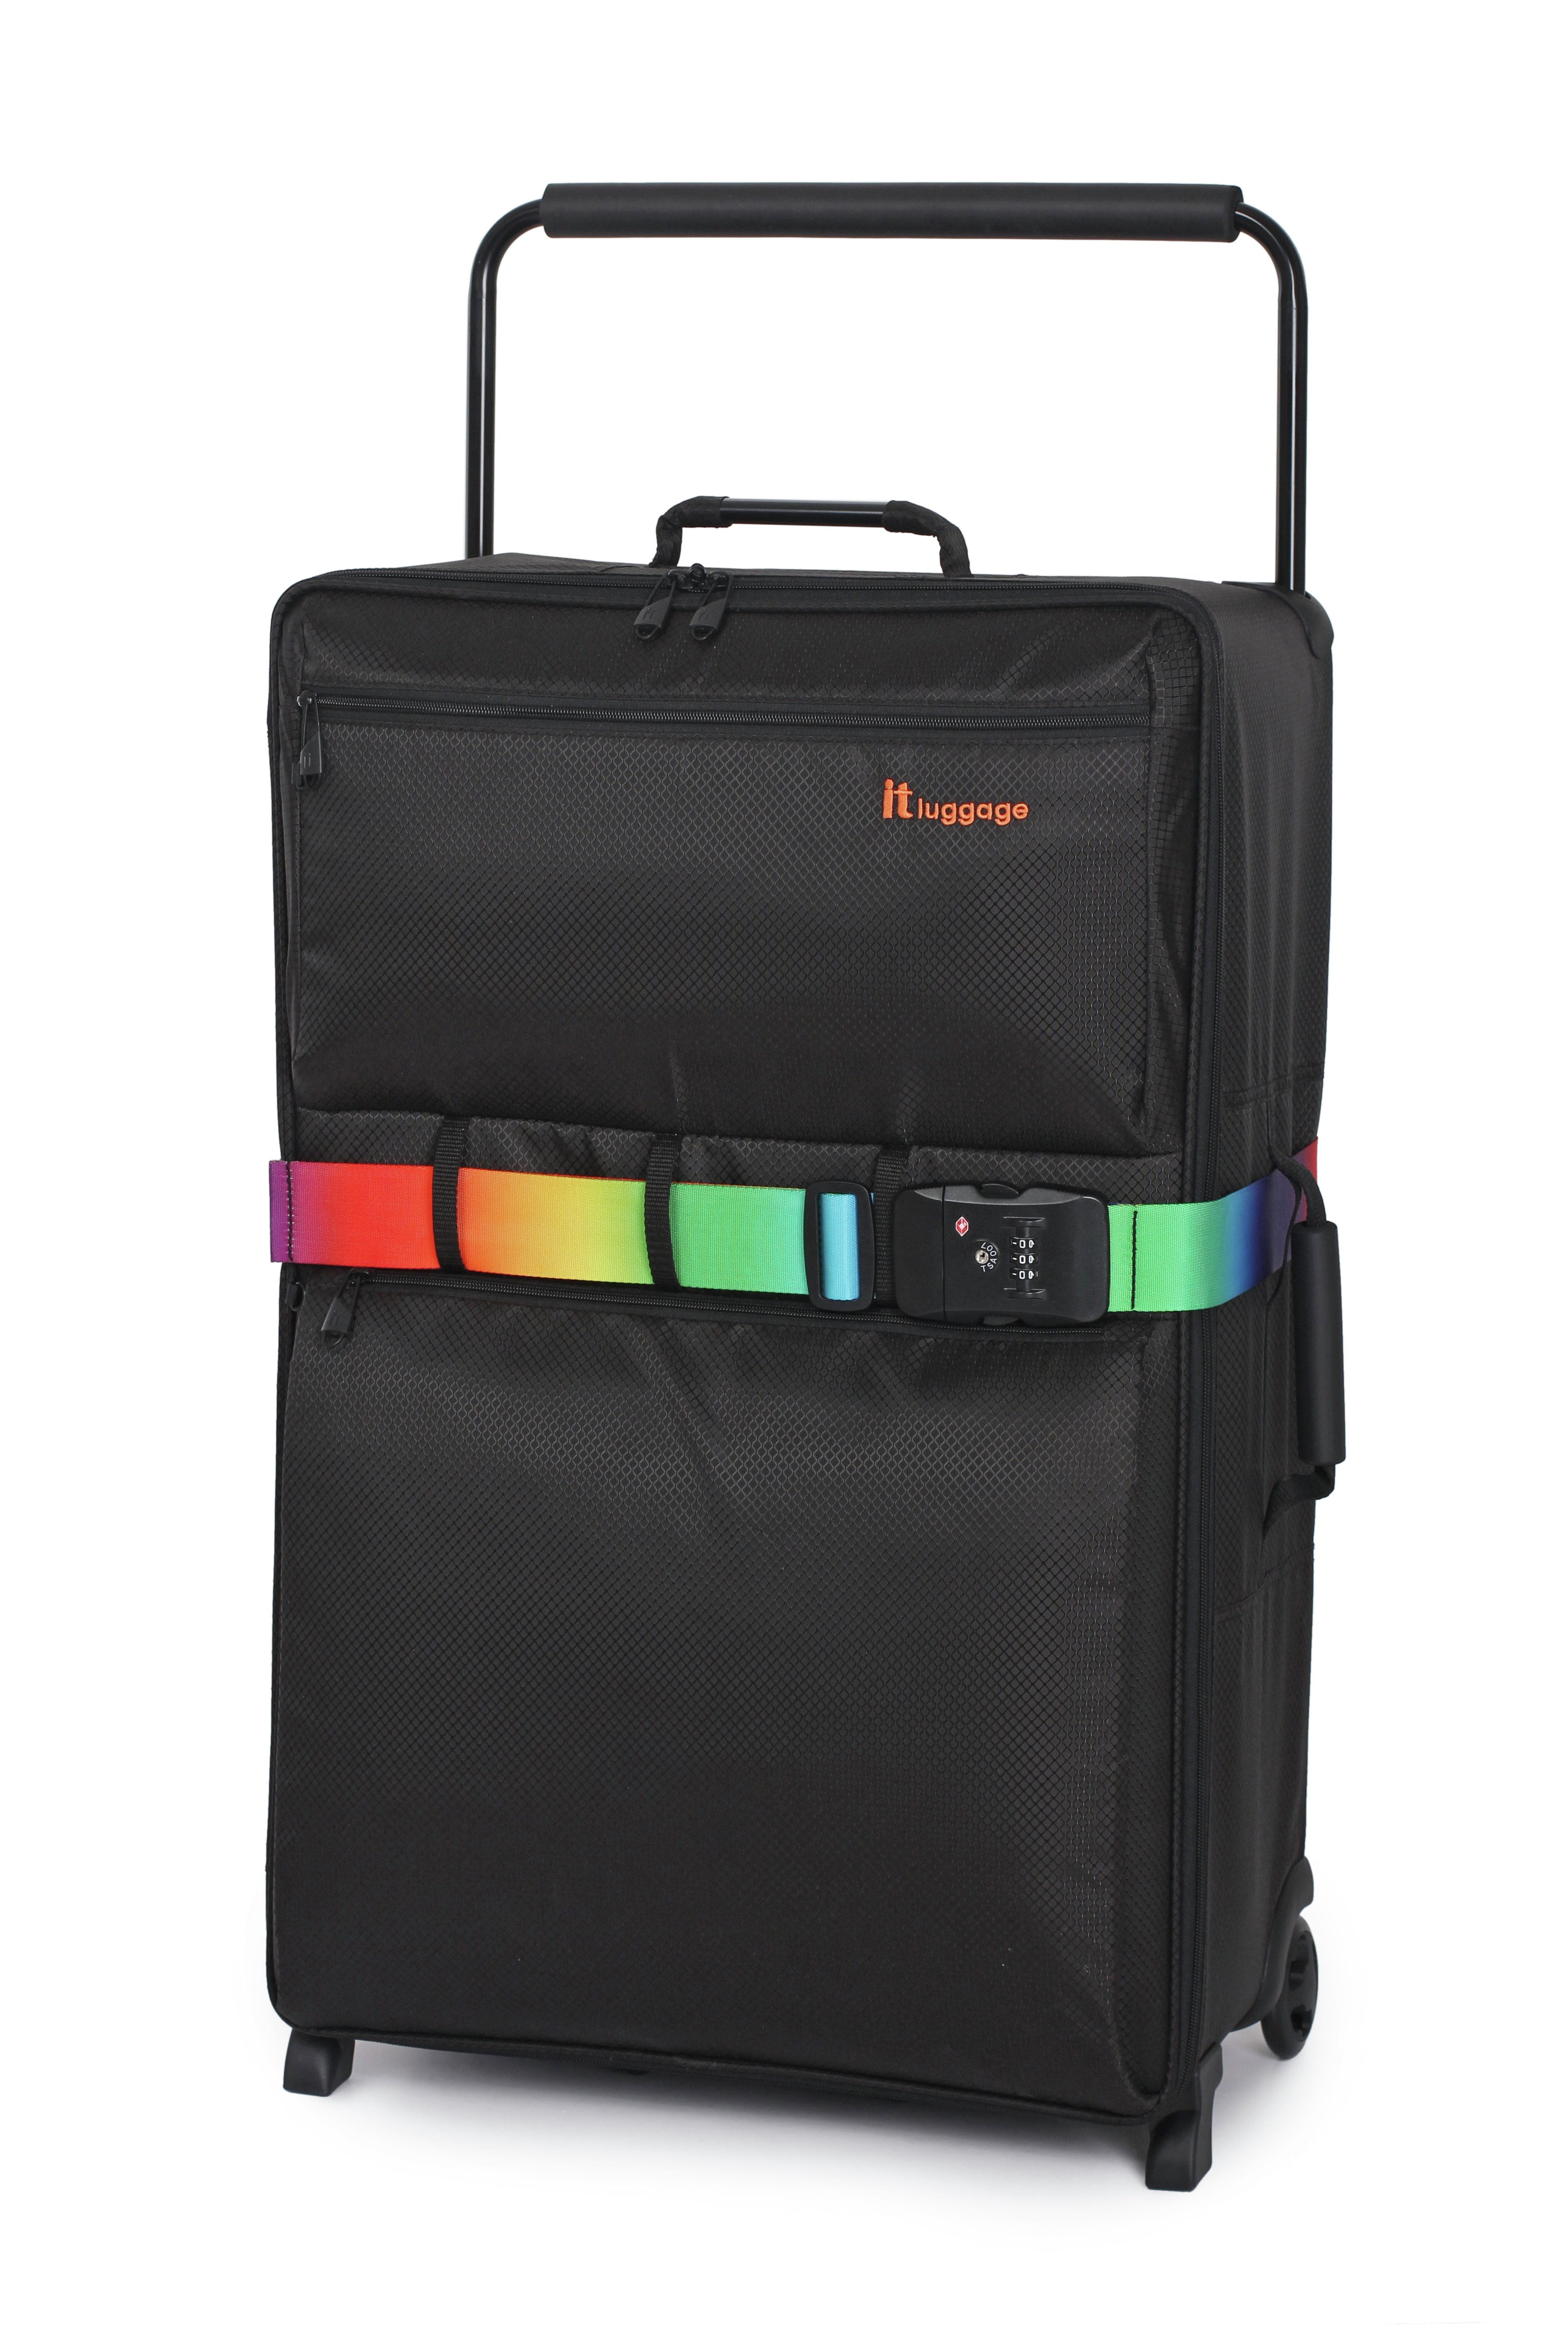 review of it luggage world 39 s lightest large 2 wheel suitcase. Black Bedroom Furniture Sets. Home Design Ideas